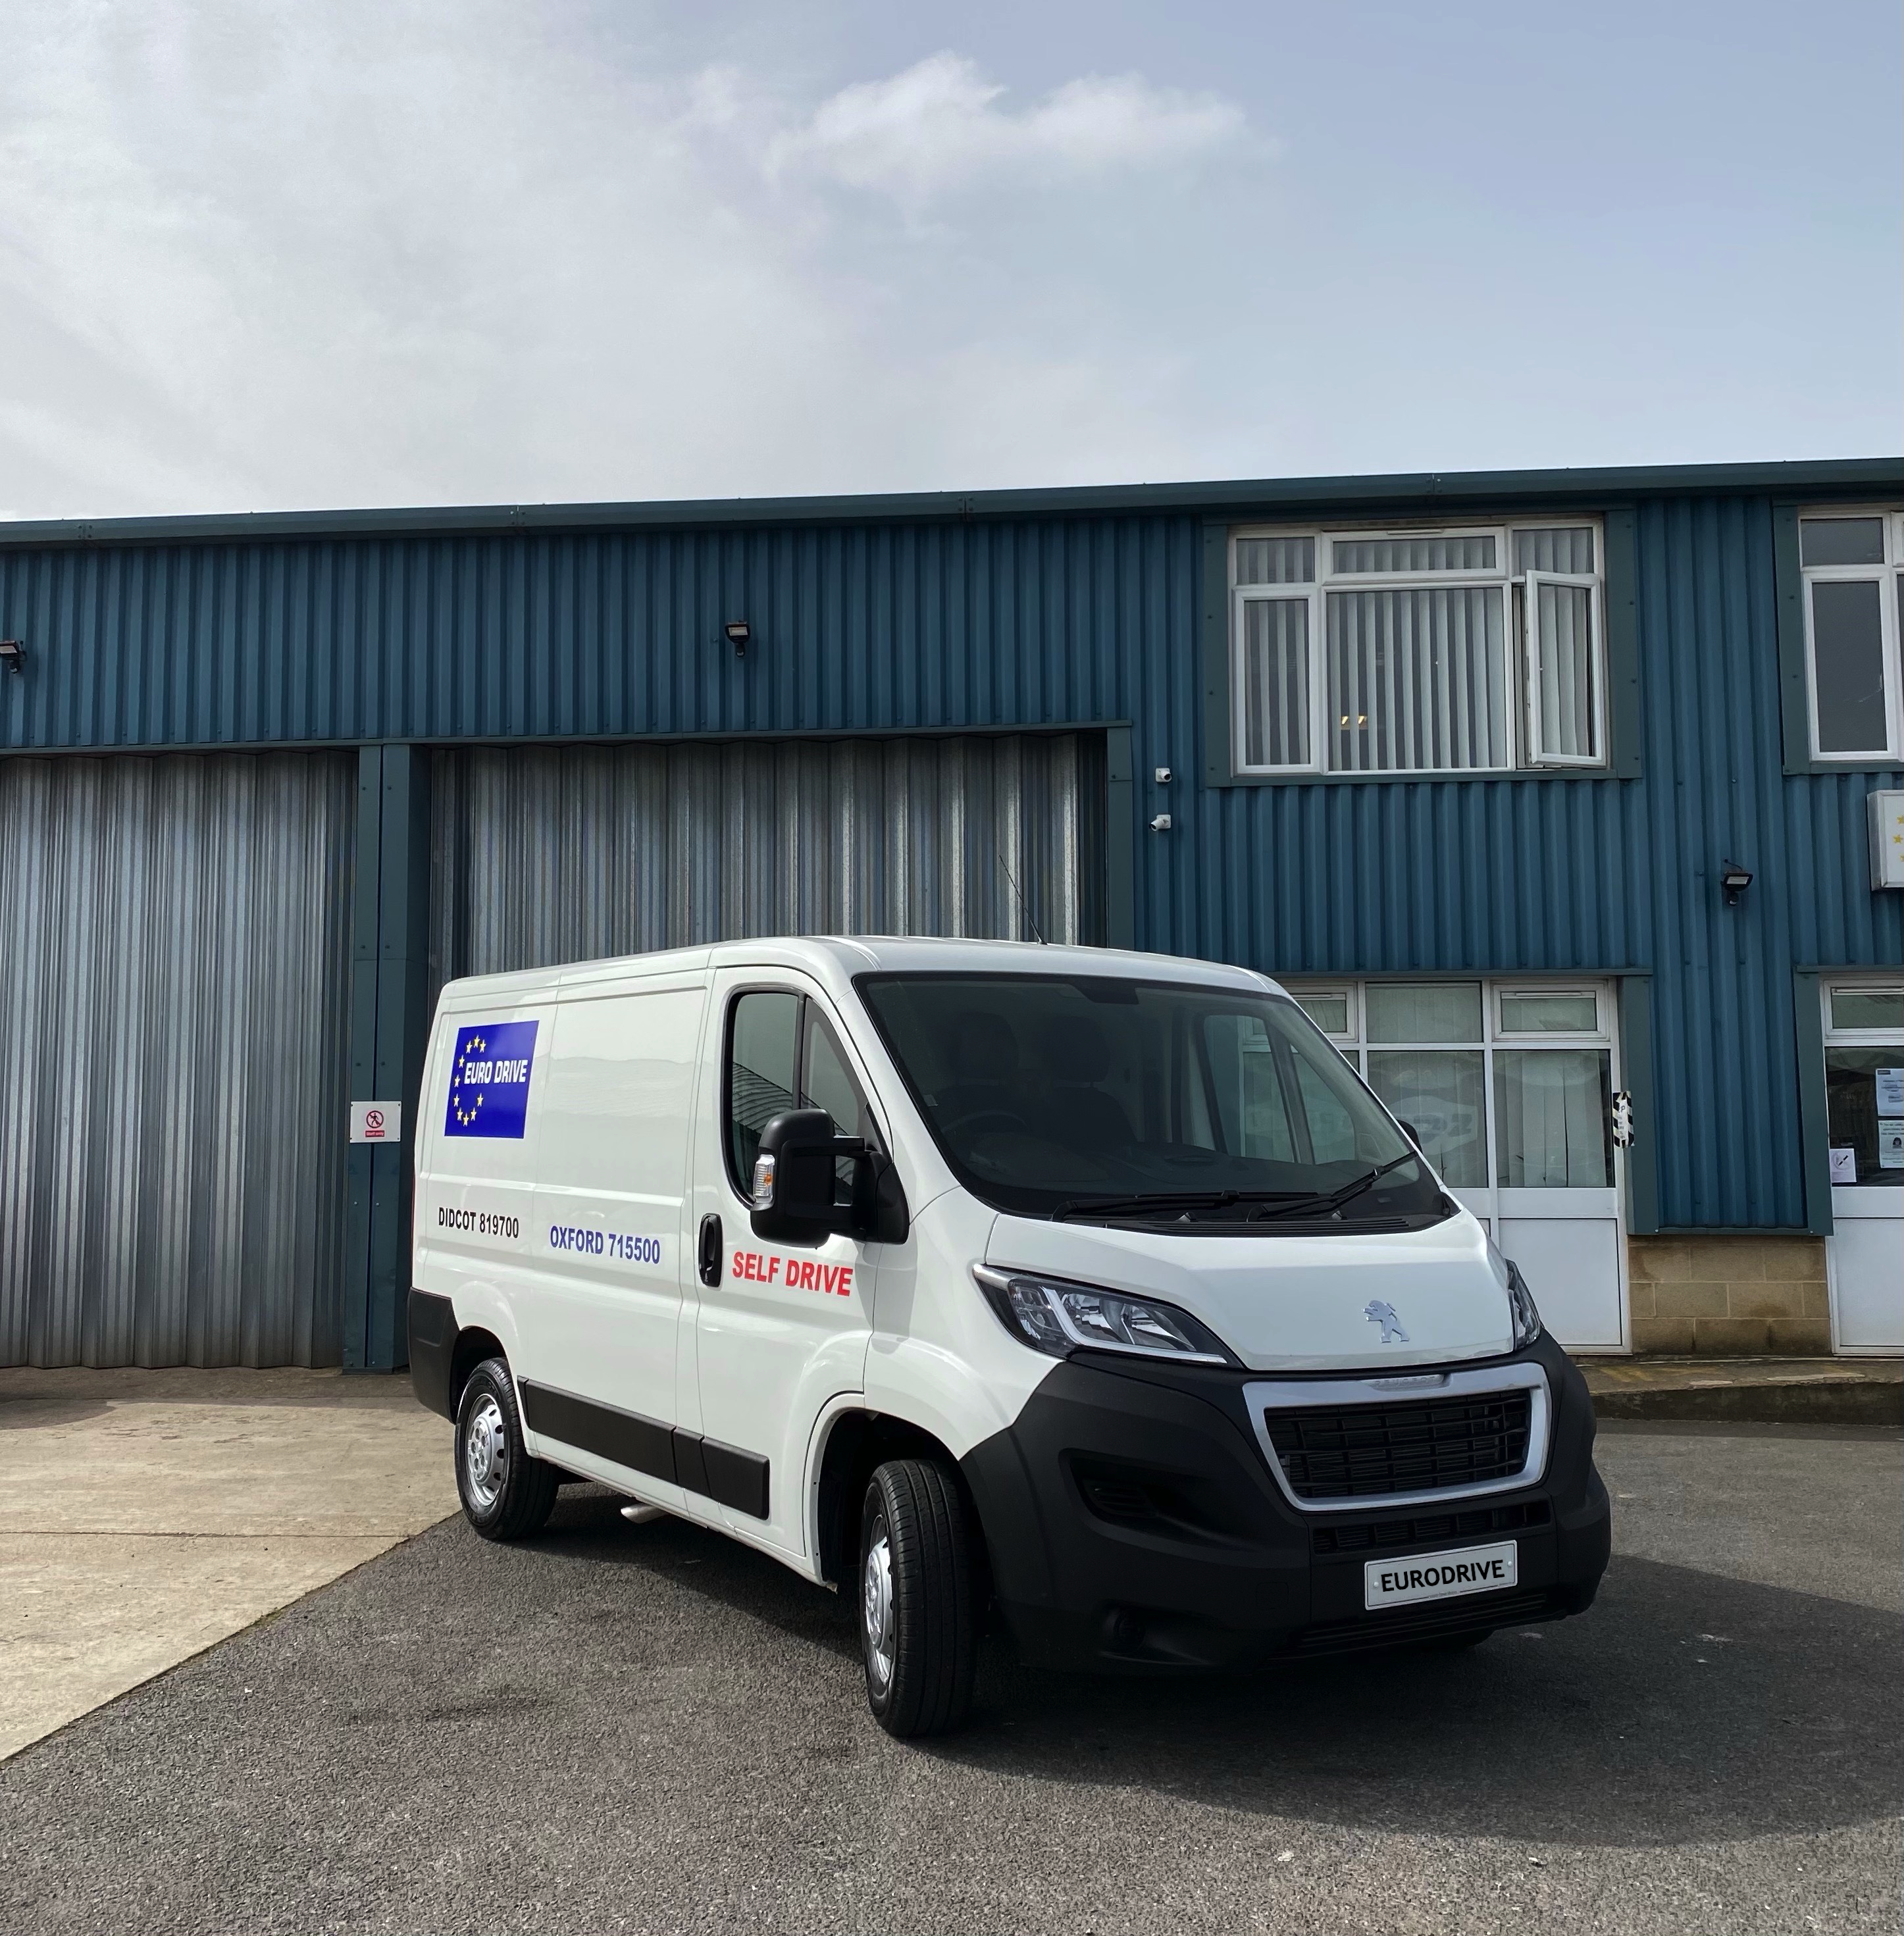 a white Peugeot van available for hire from EuroDrive